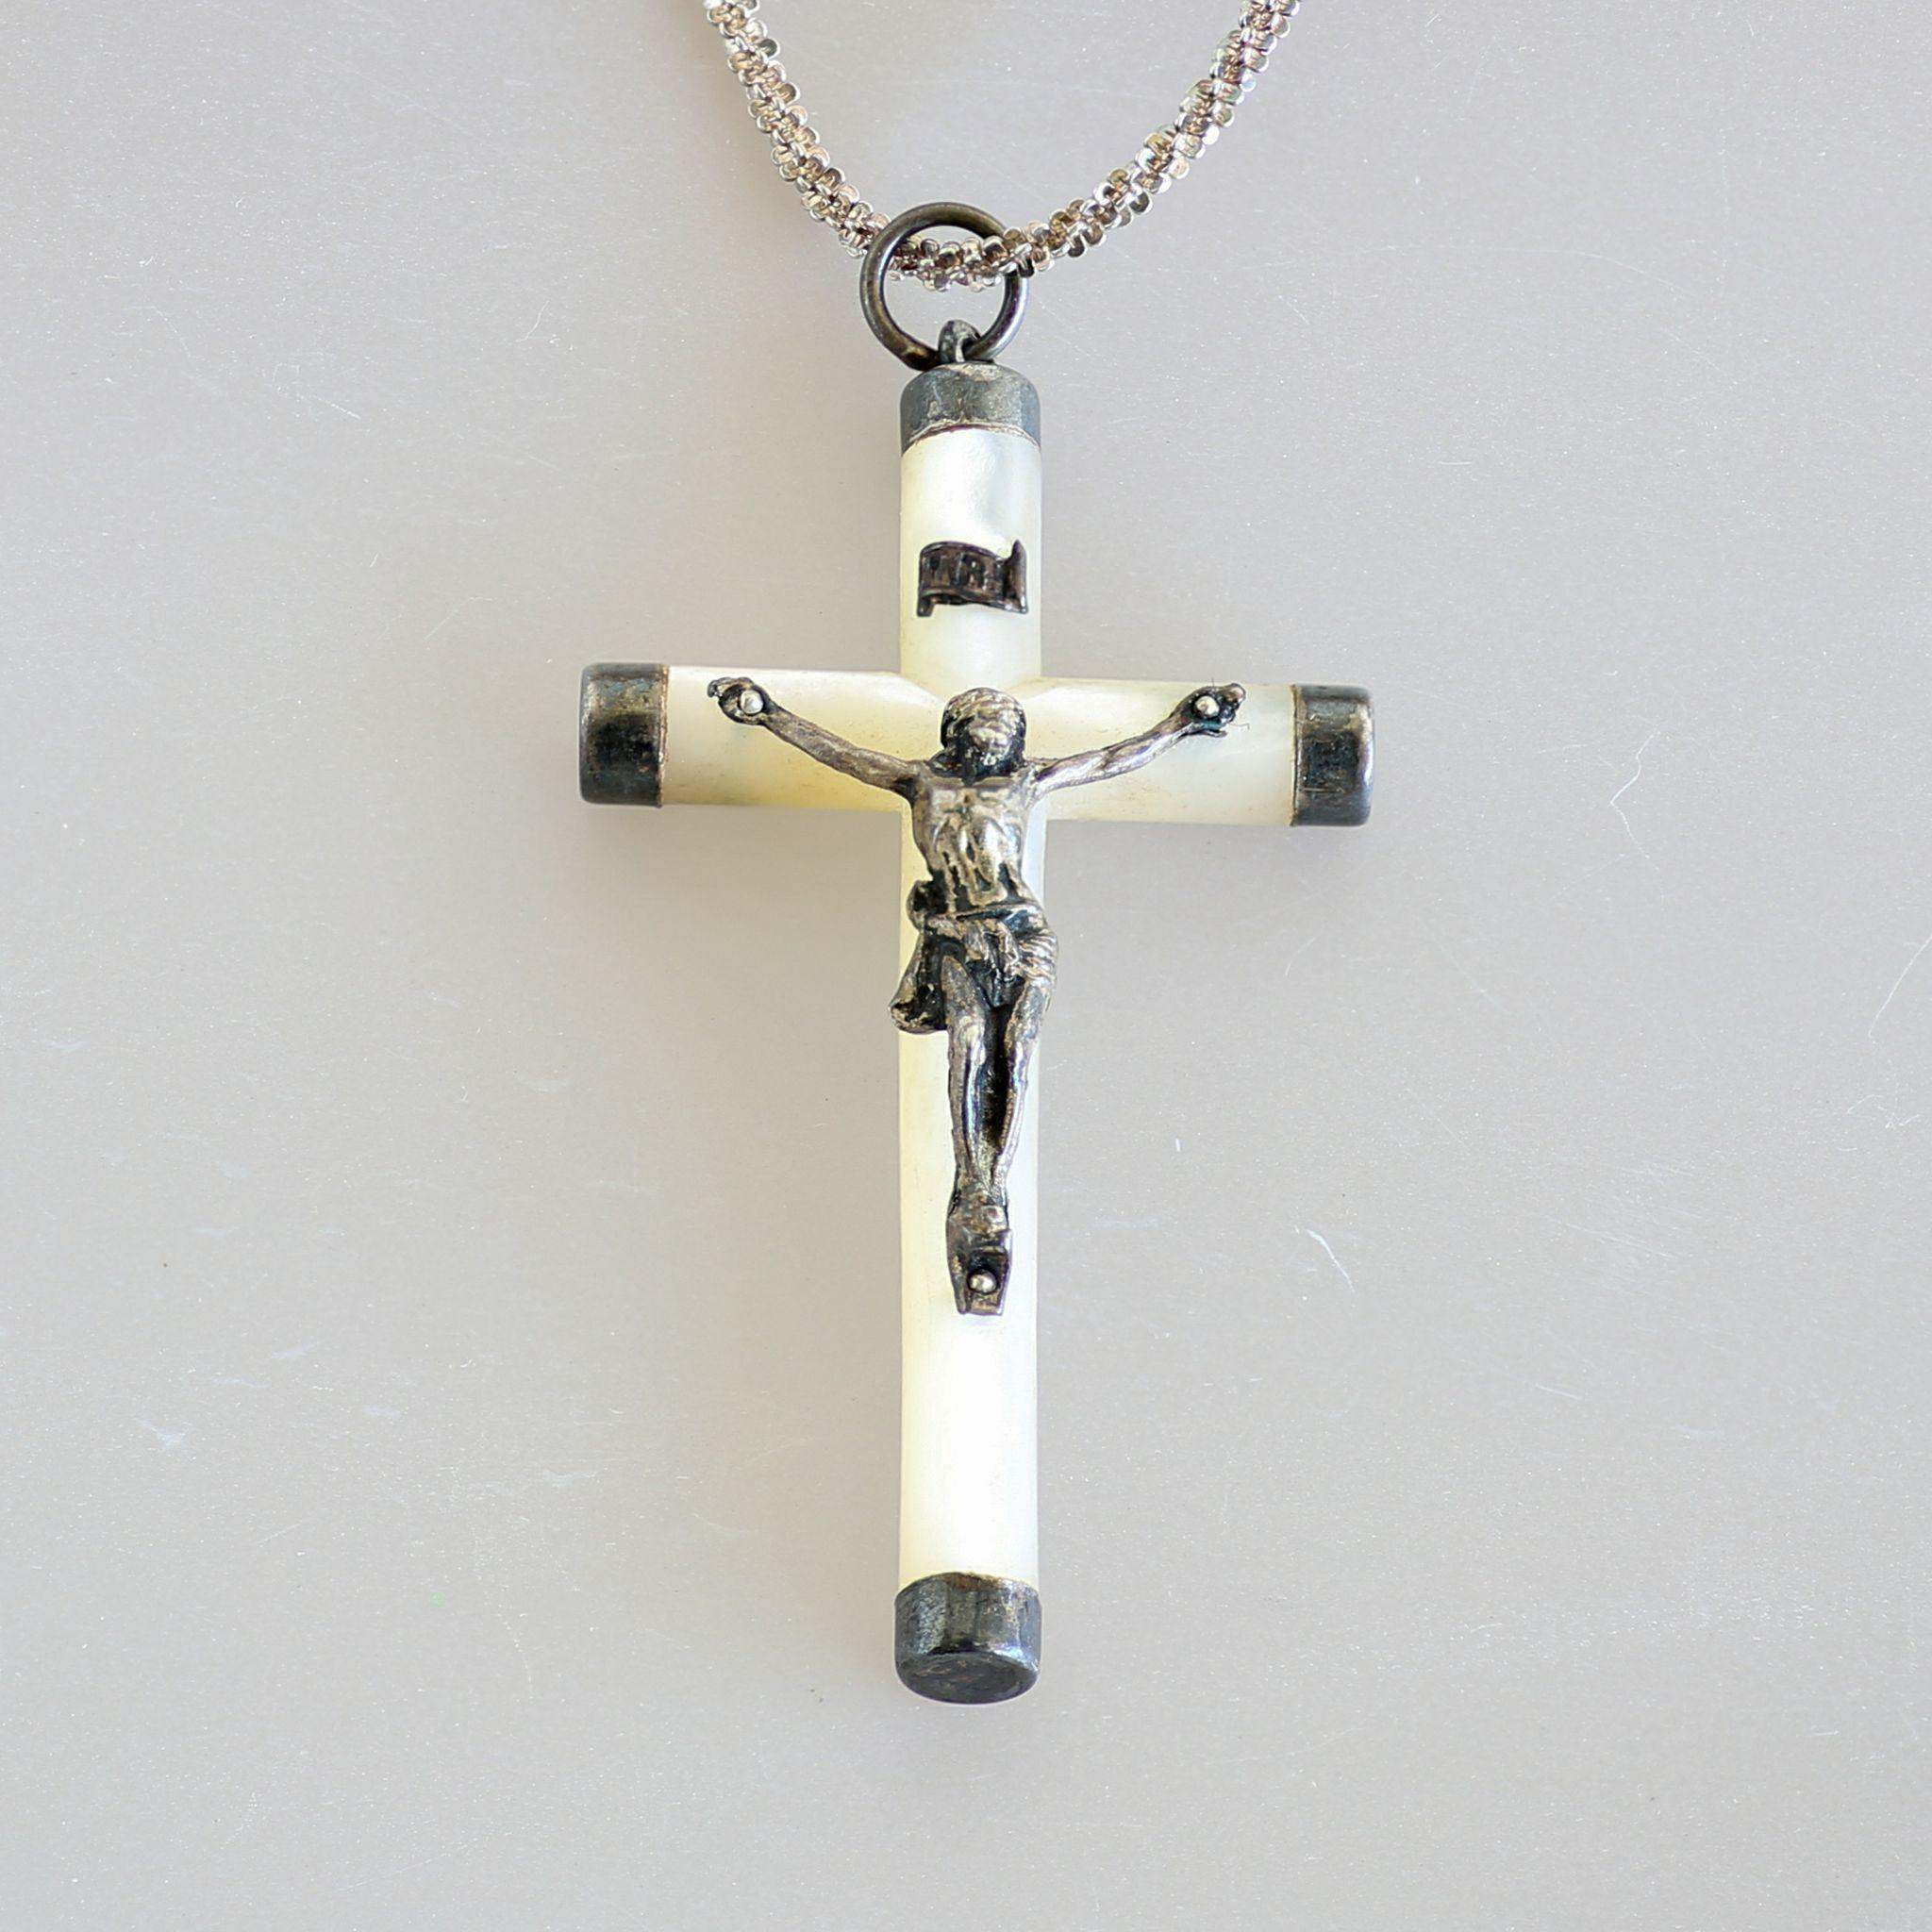 Circa 1890 French Antique Silver M.O.P. Crucifix